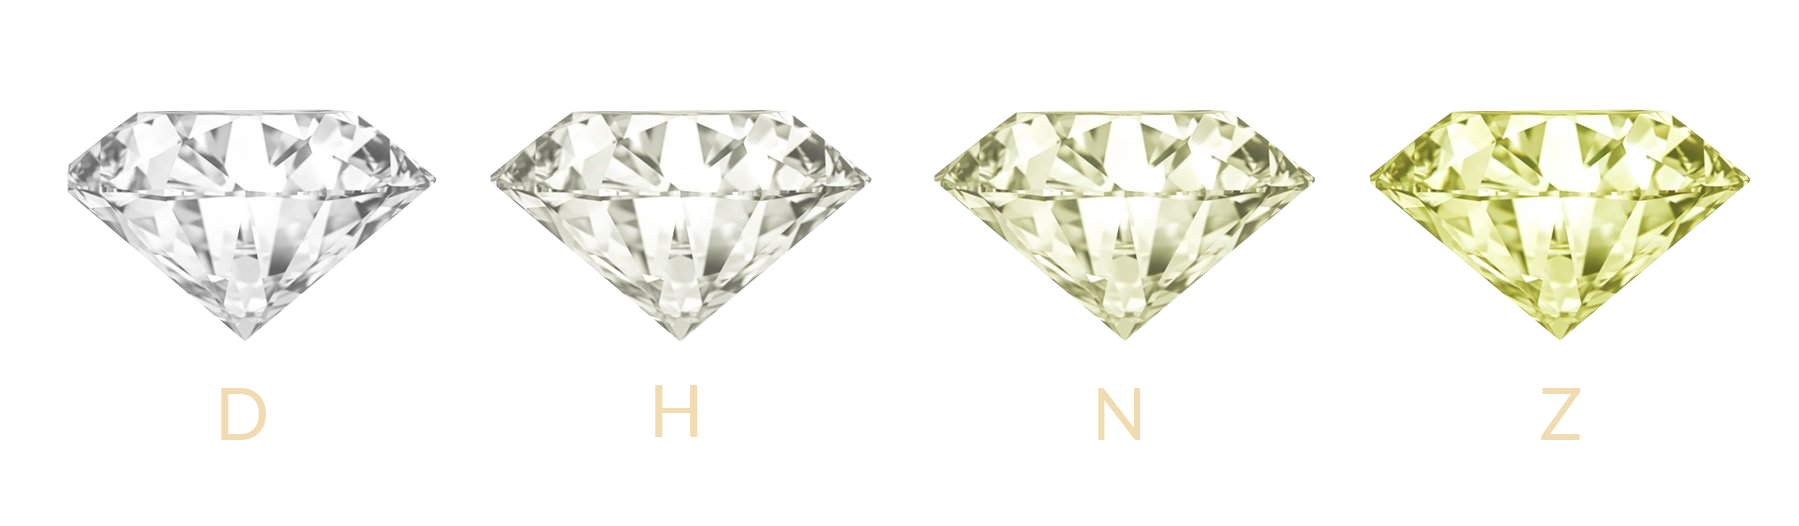 Diamond_Color_Scale.png